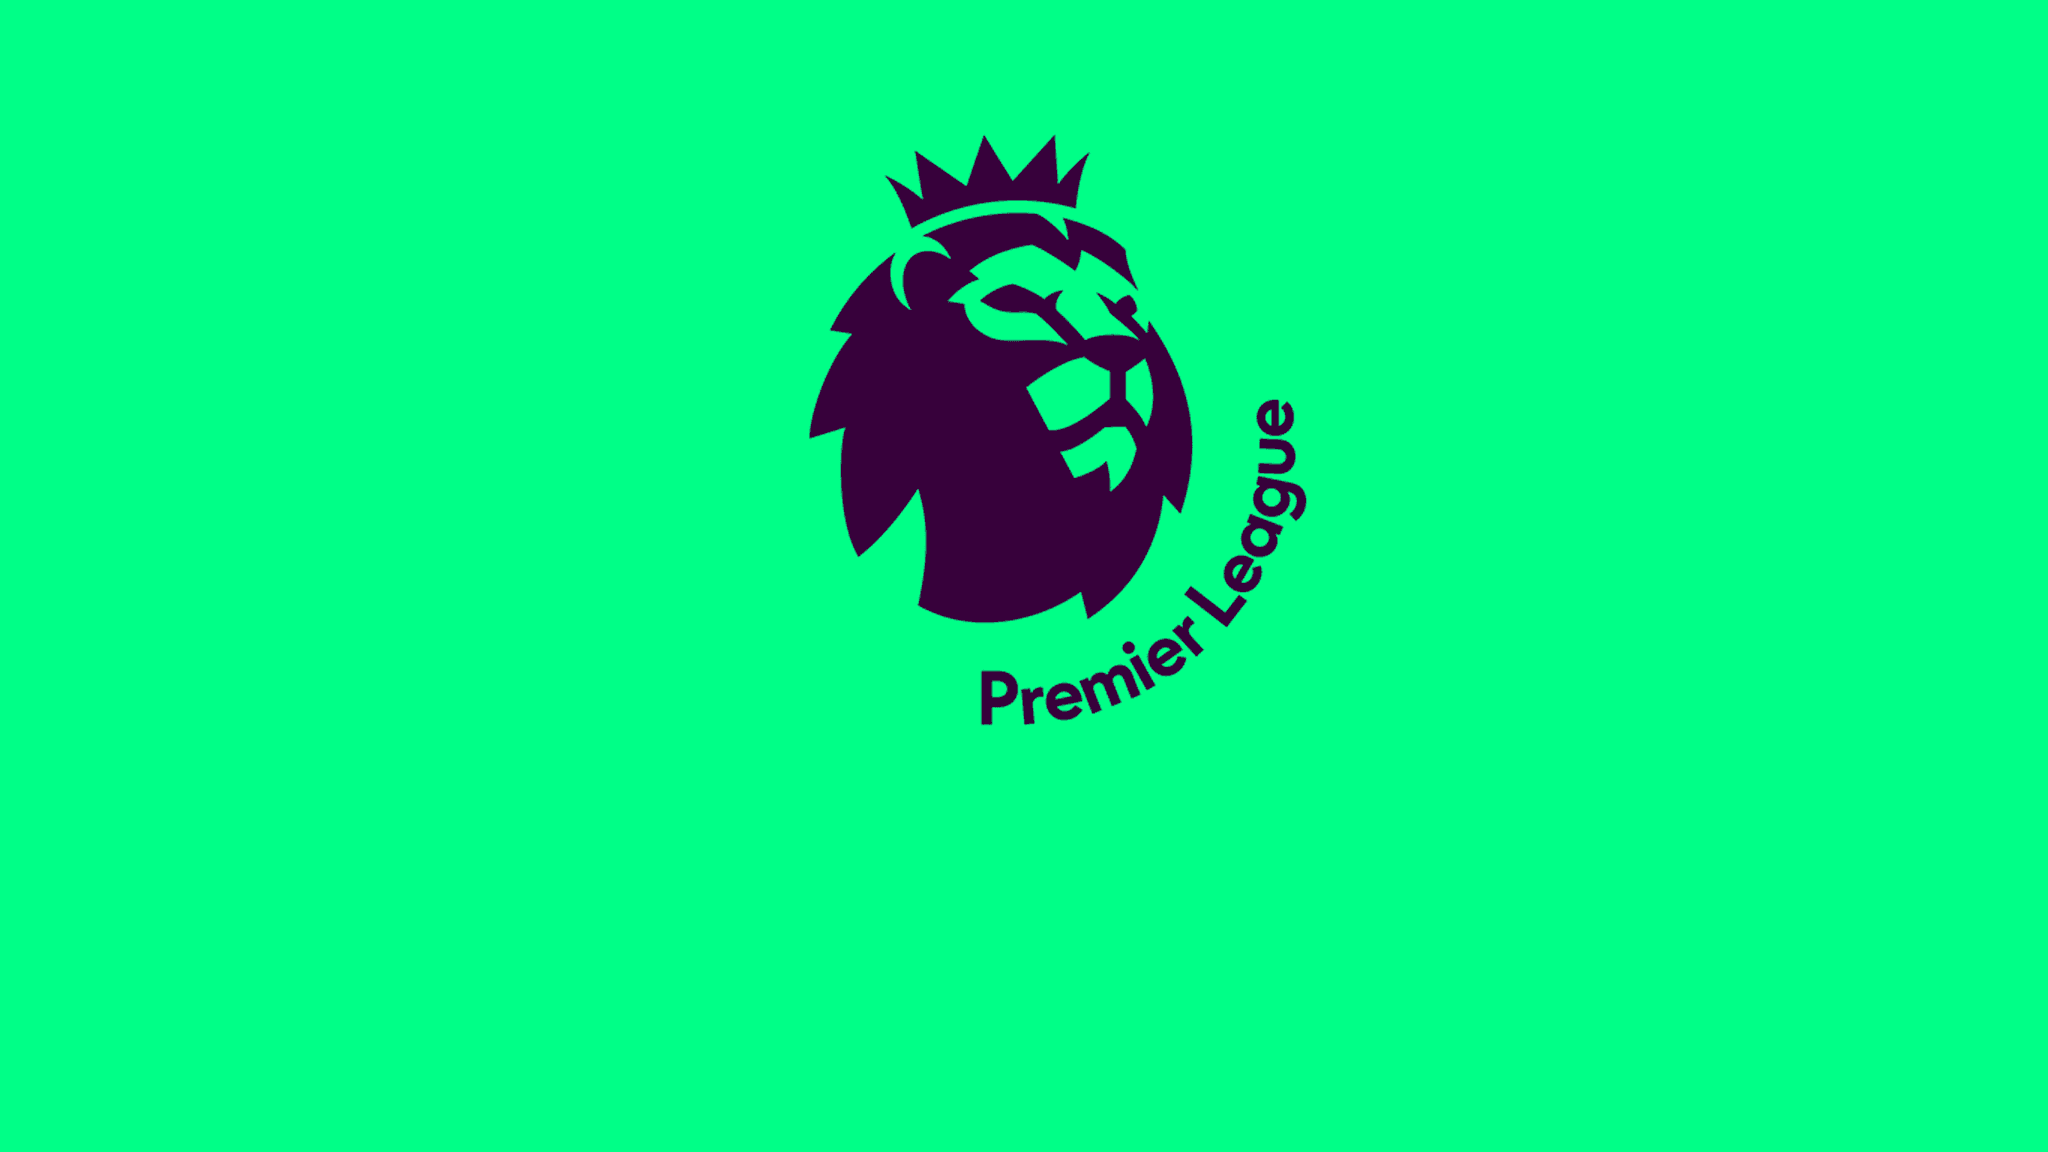 Watch Premier League Live Stream Dazn Jp